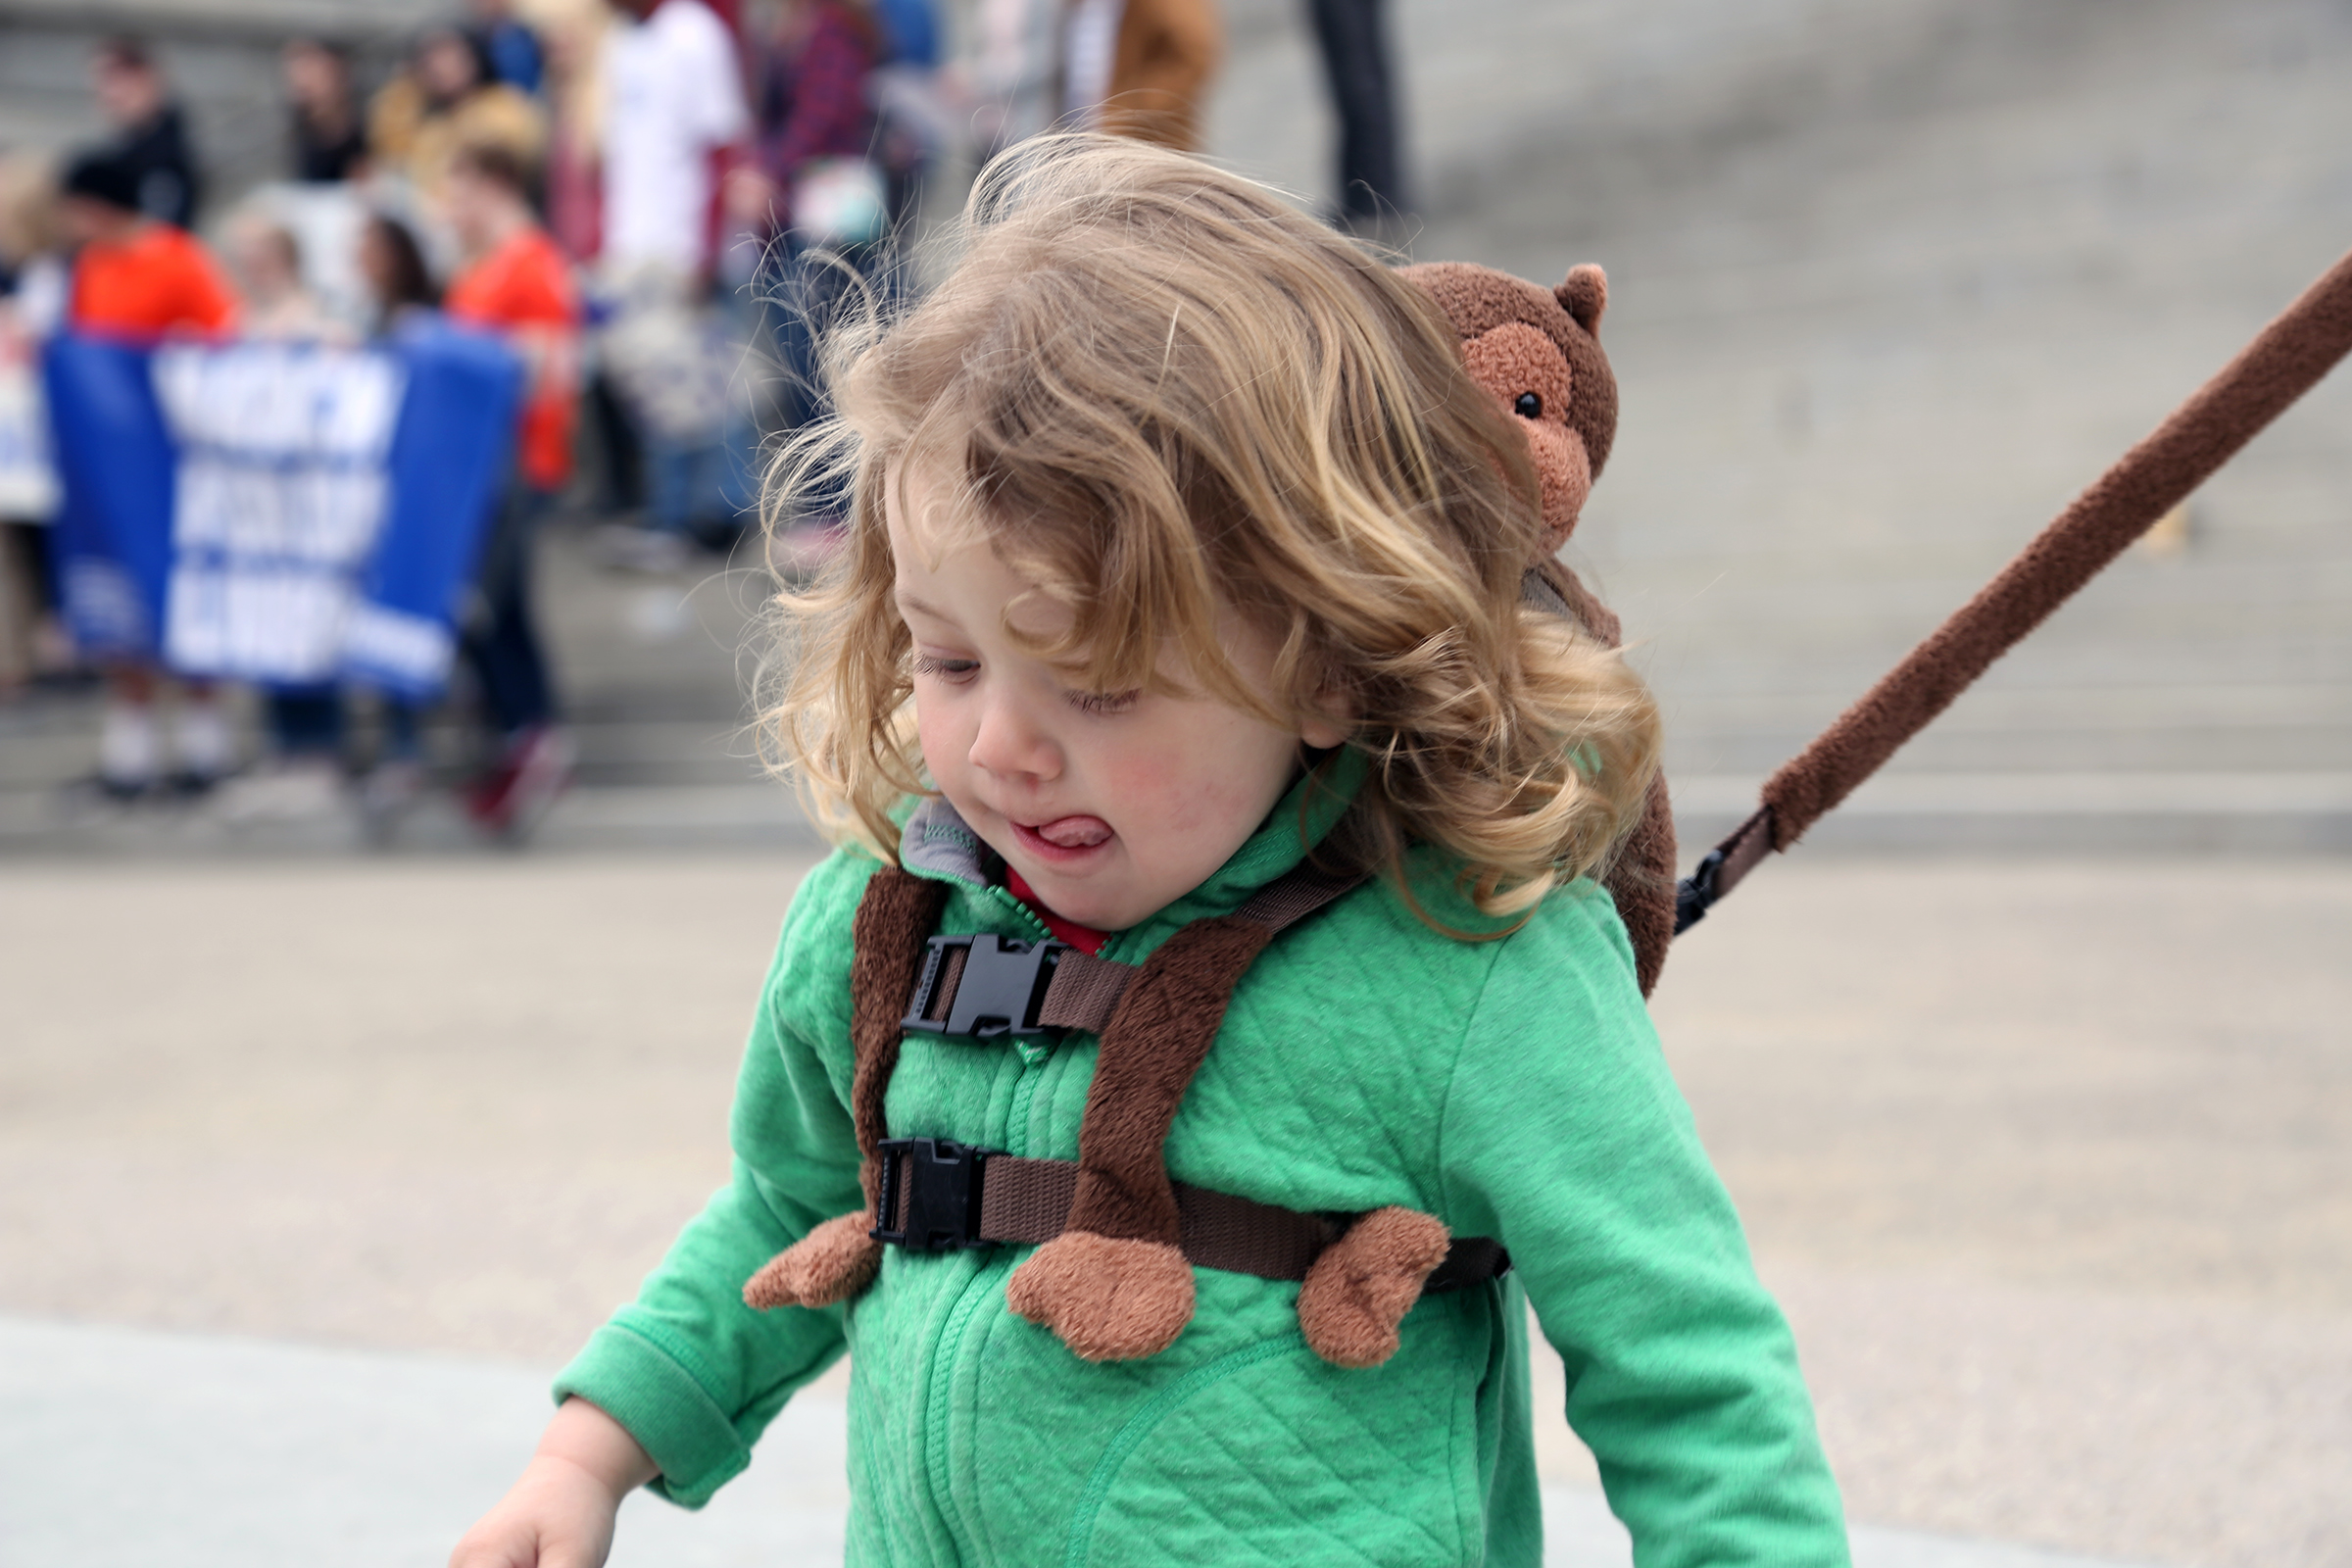 Grandma brought this toddler to the march, using a leash to keep him within reach as he played on the State House steps.